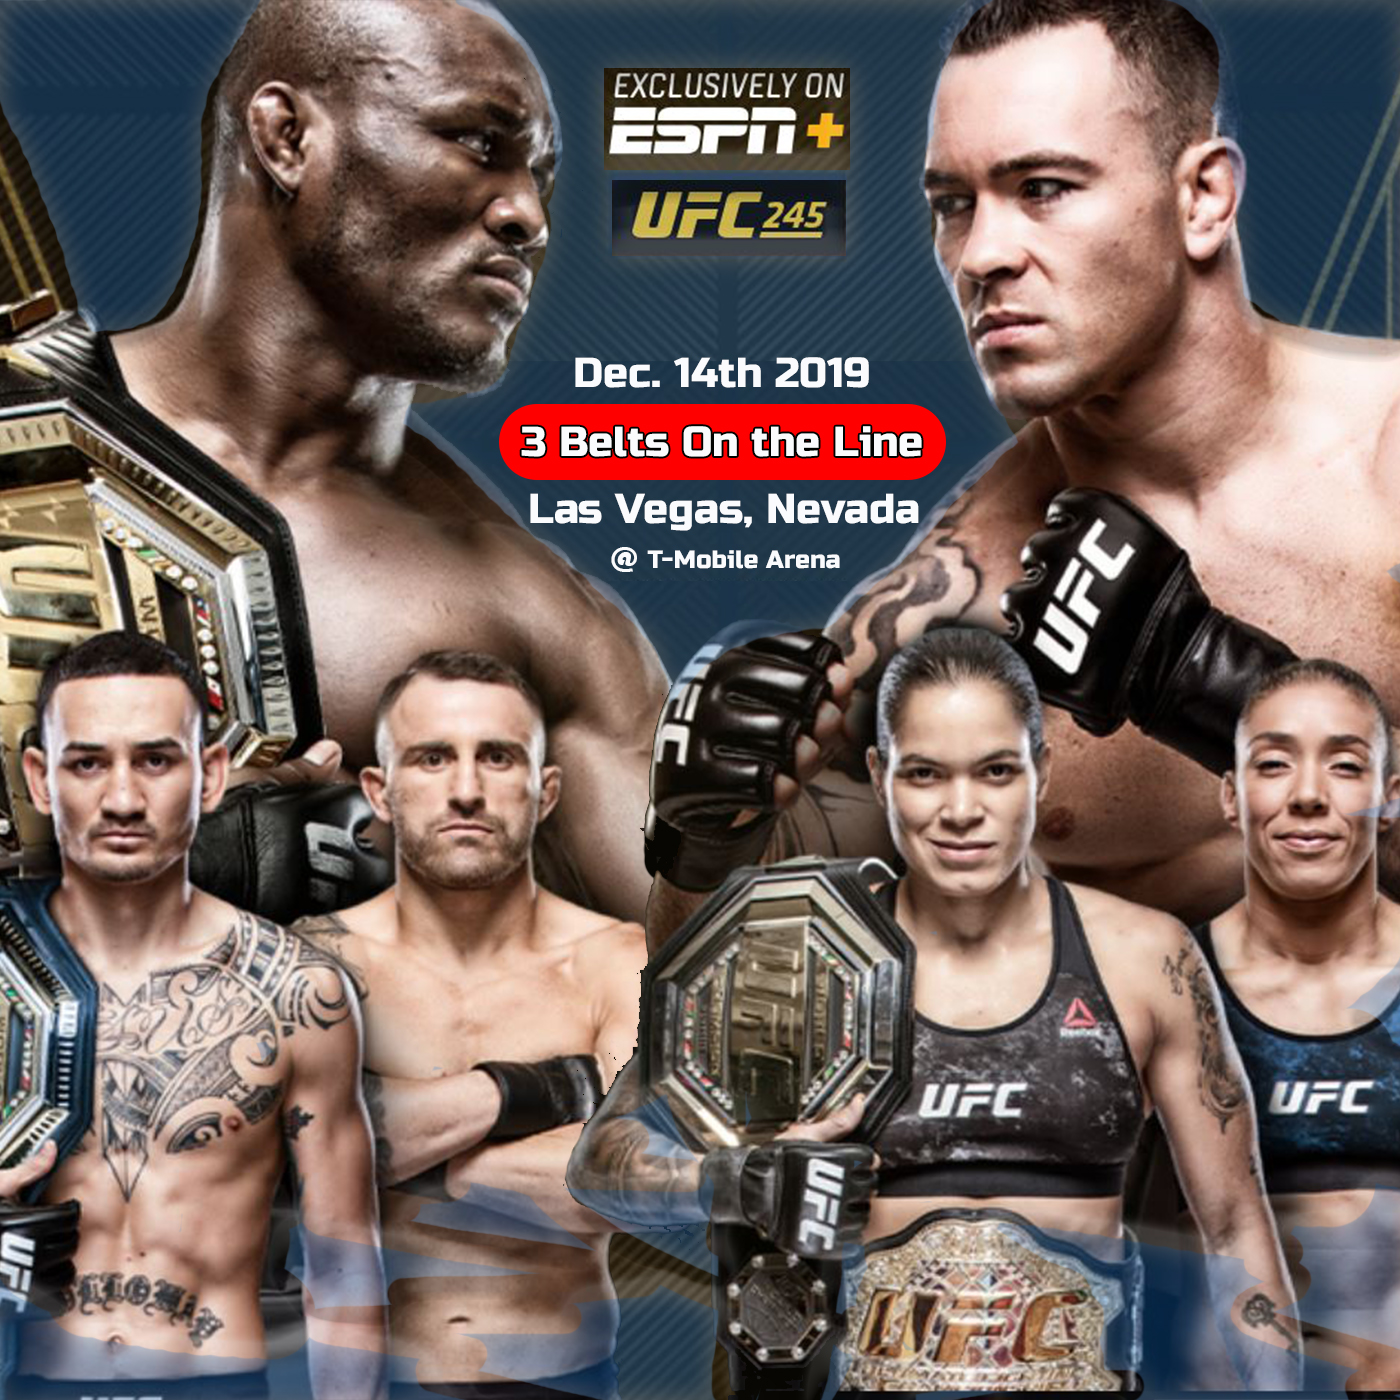 Artwork for UFC 245 closing out 2019 with 3 Championship Titles on the Line